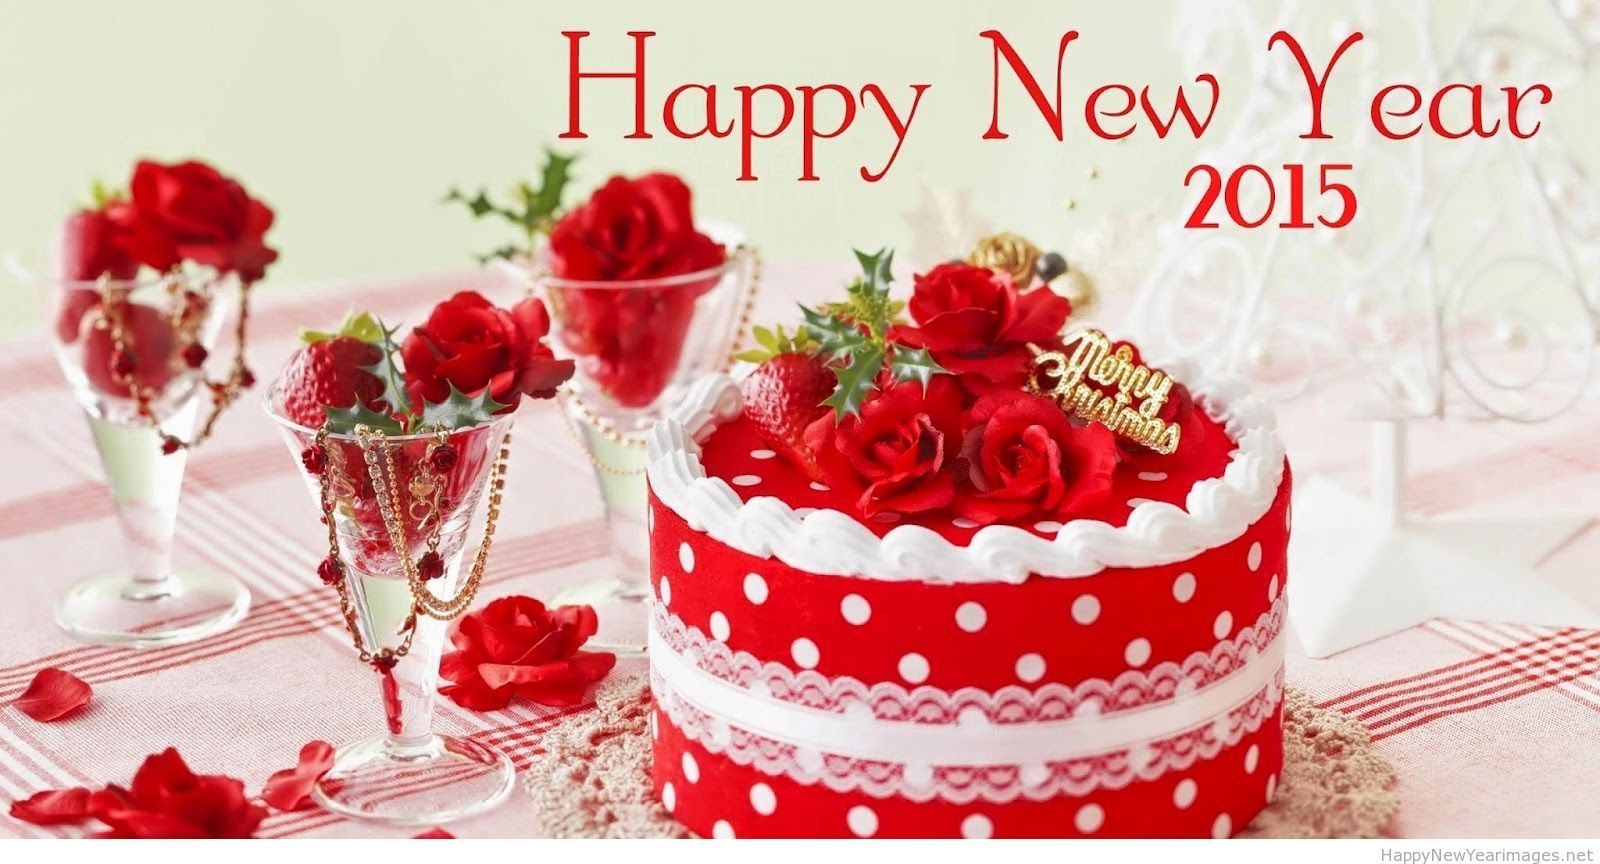 Wallpaper download new year 2015 - New Year 2015 Design Cake Hd Pictures Images